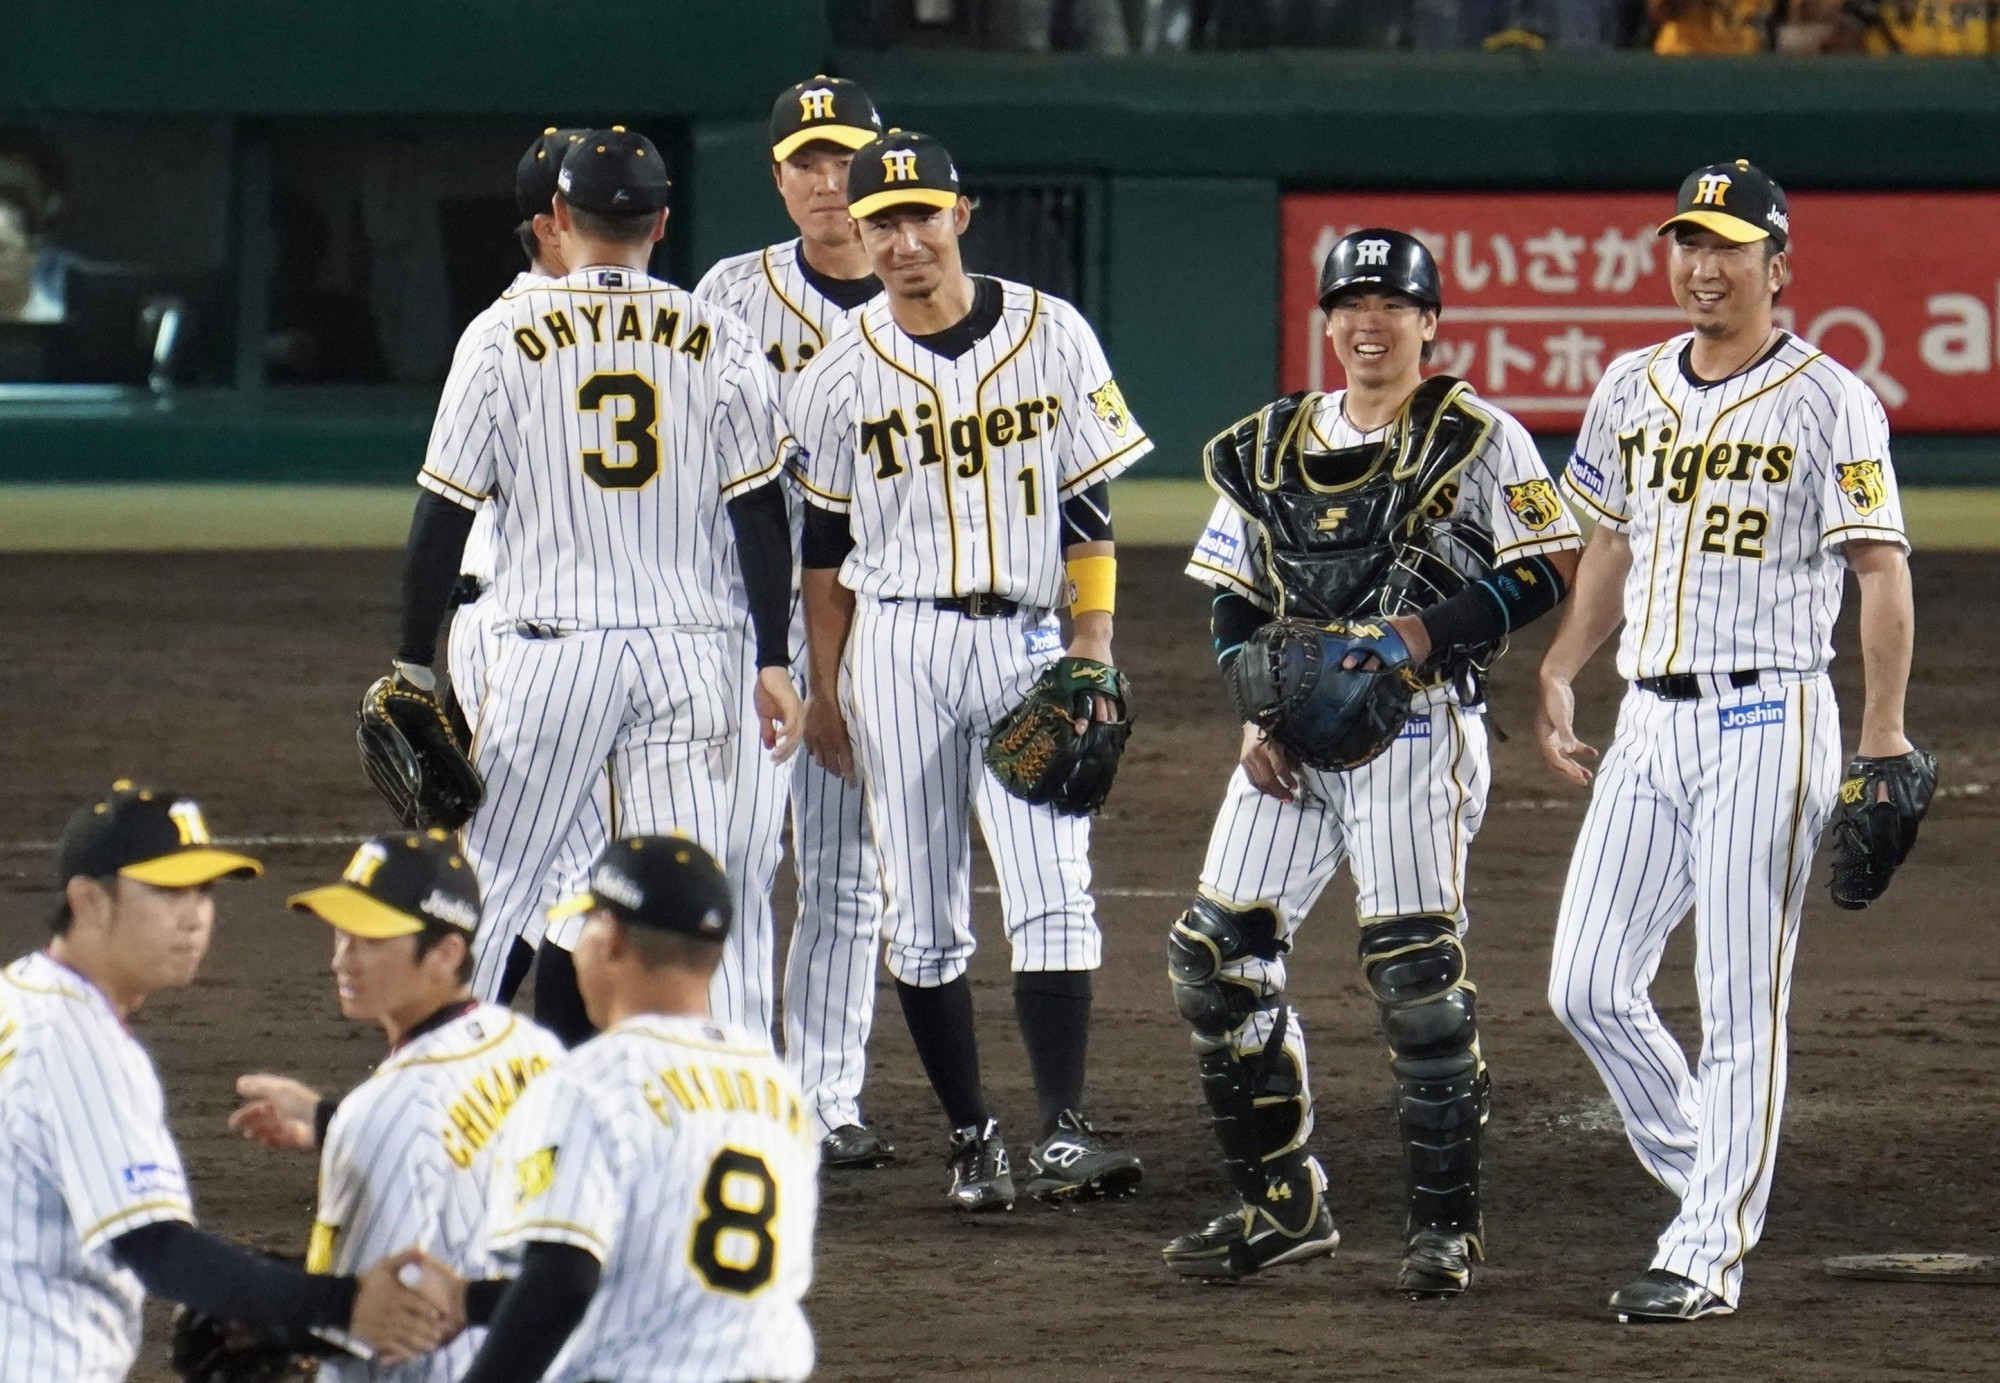 Tigers players celebrate their 3-0 win over the Dragons on Monday at Koshien Stadium. The result capped a six-game winning streak for Hanshin as it leapfrogged the Hiroshima Carp into third place and a spot in the Climax Series. | KYODO